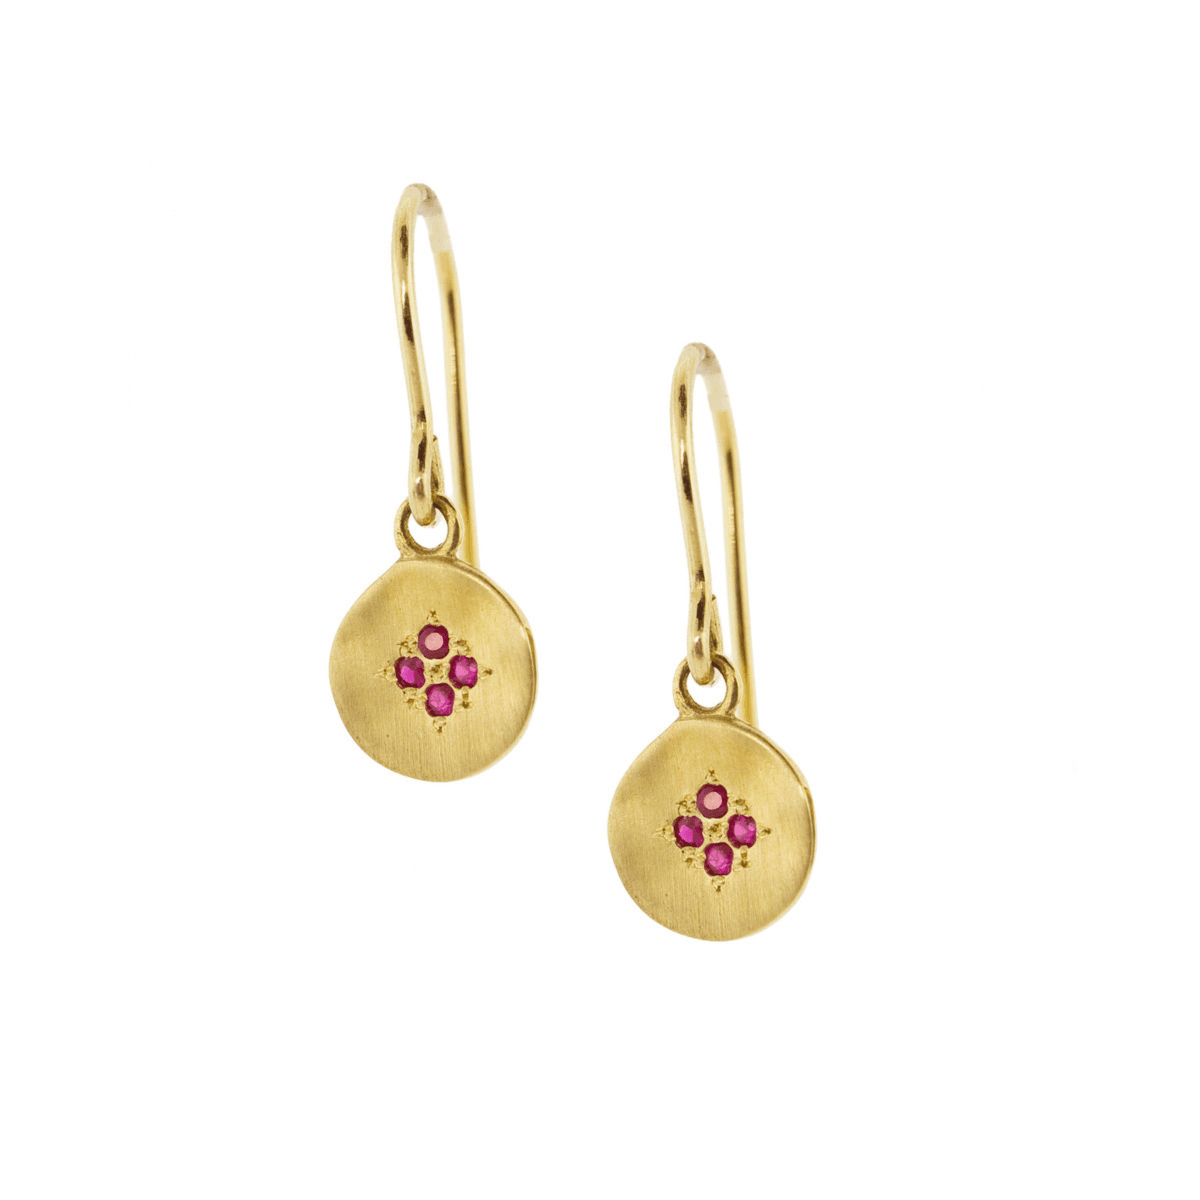 Roby Earrings - Adel Chefridi - Mansoor Jewelers